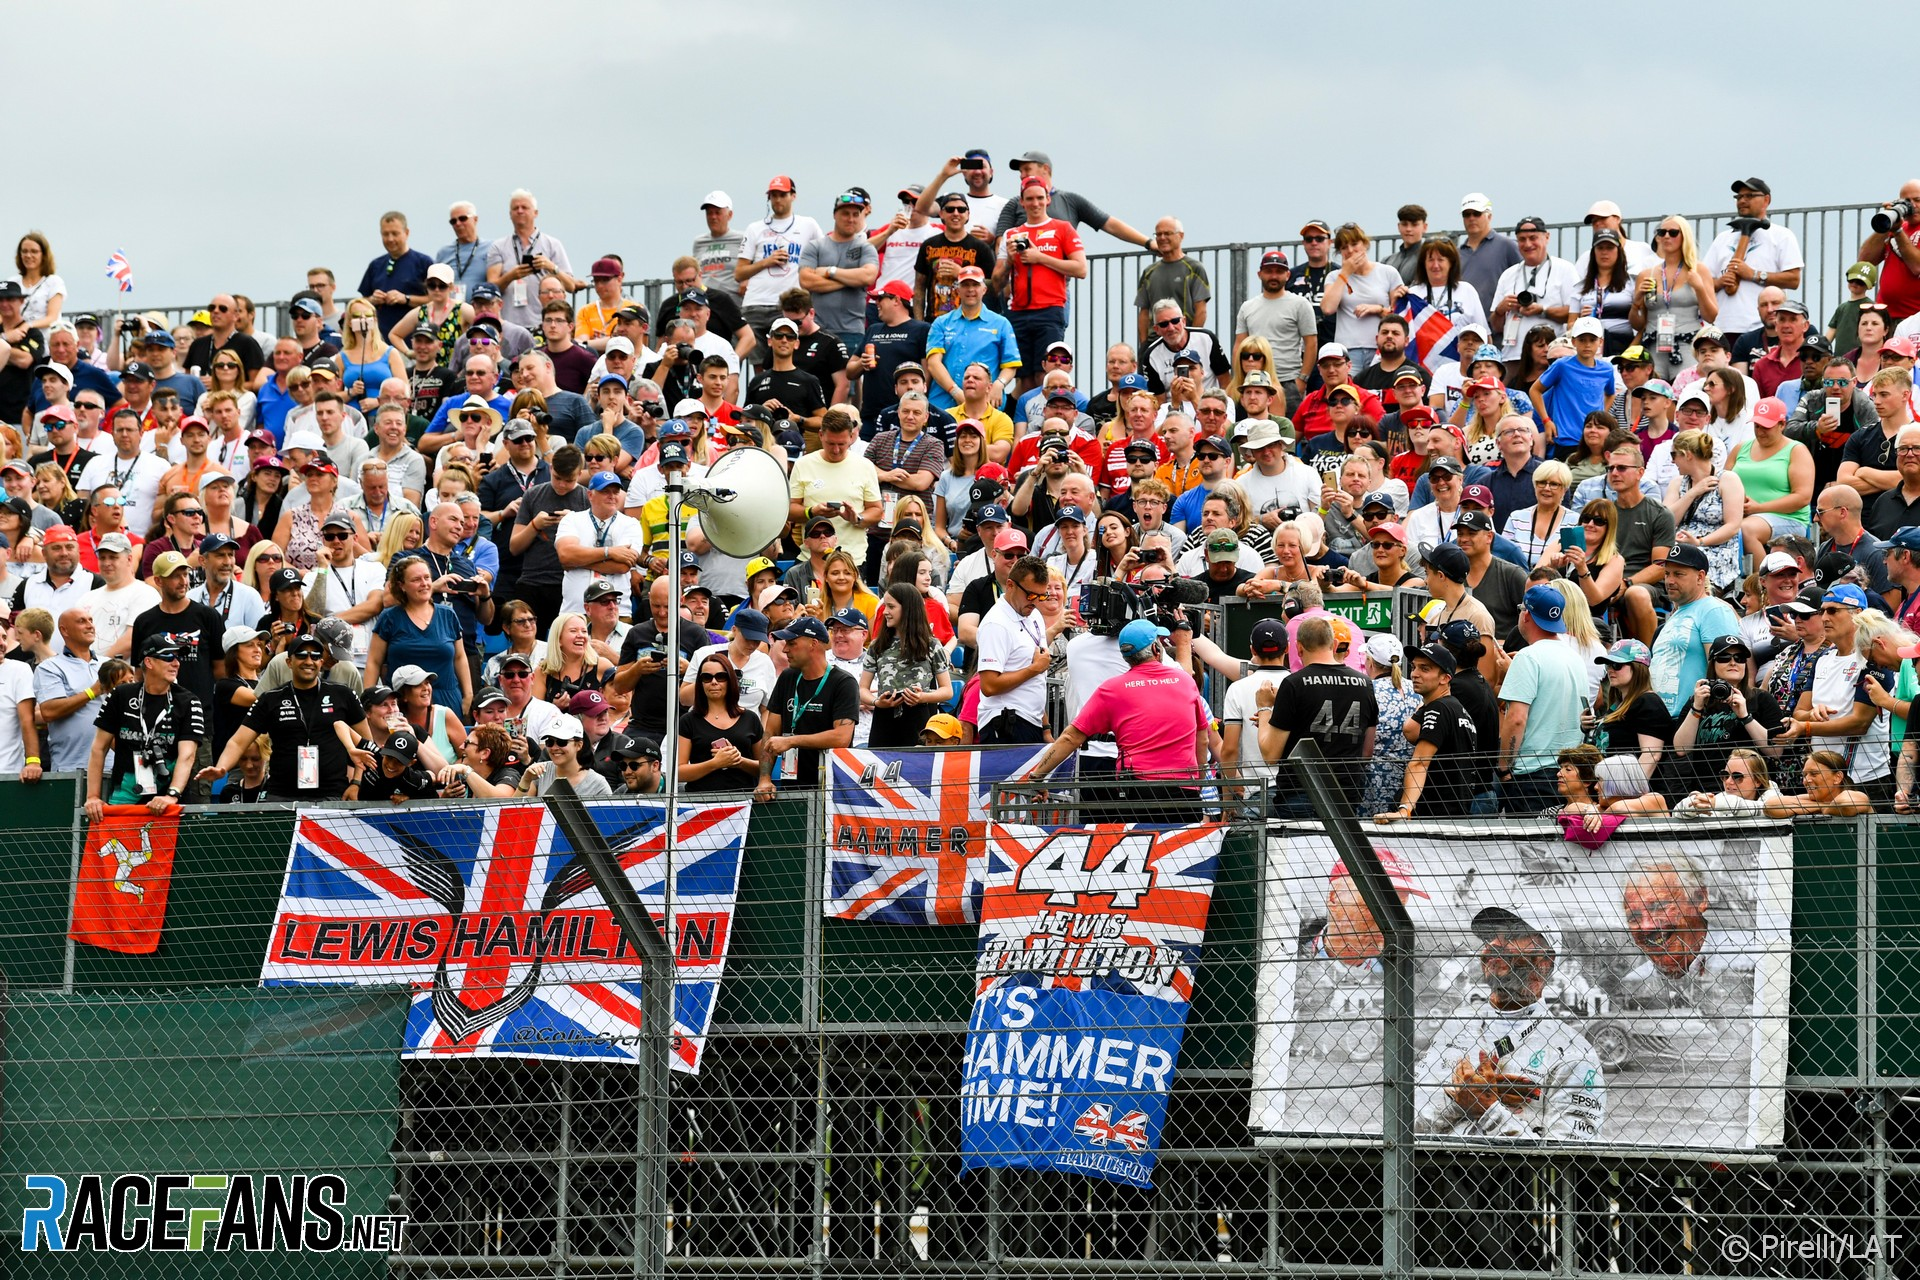 More F1 venues following Silverstone's lead in aim for full crowds